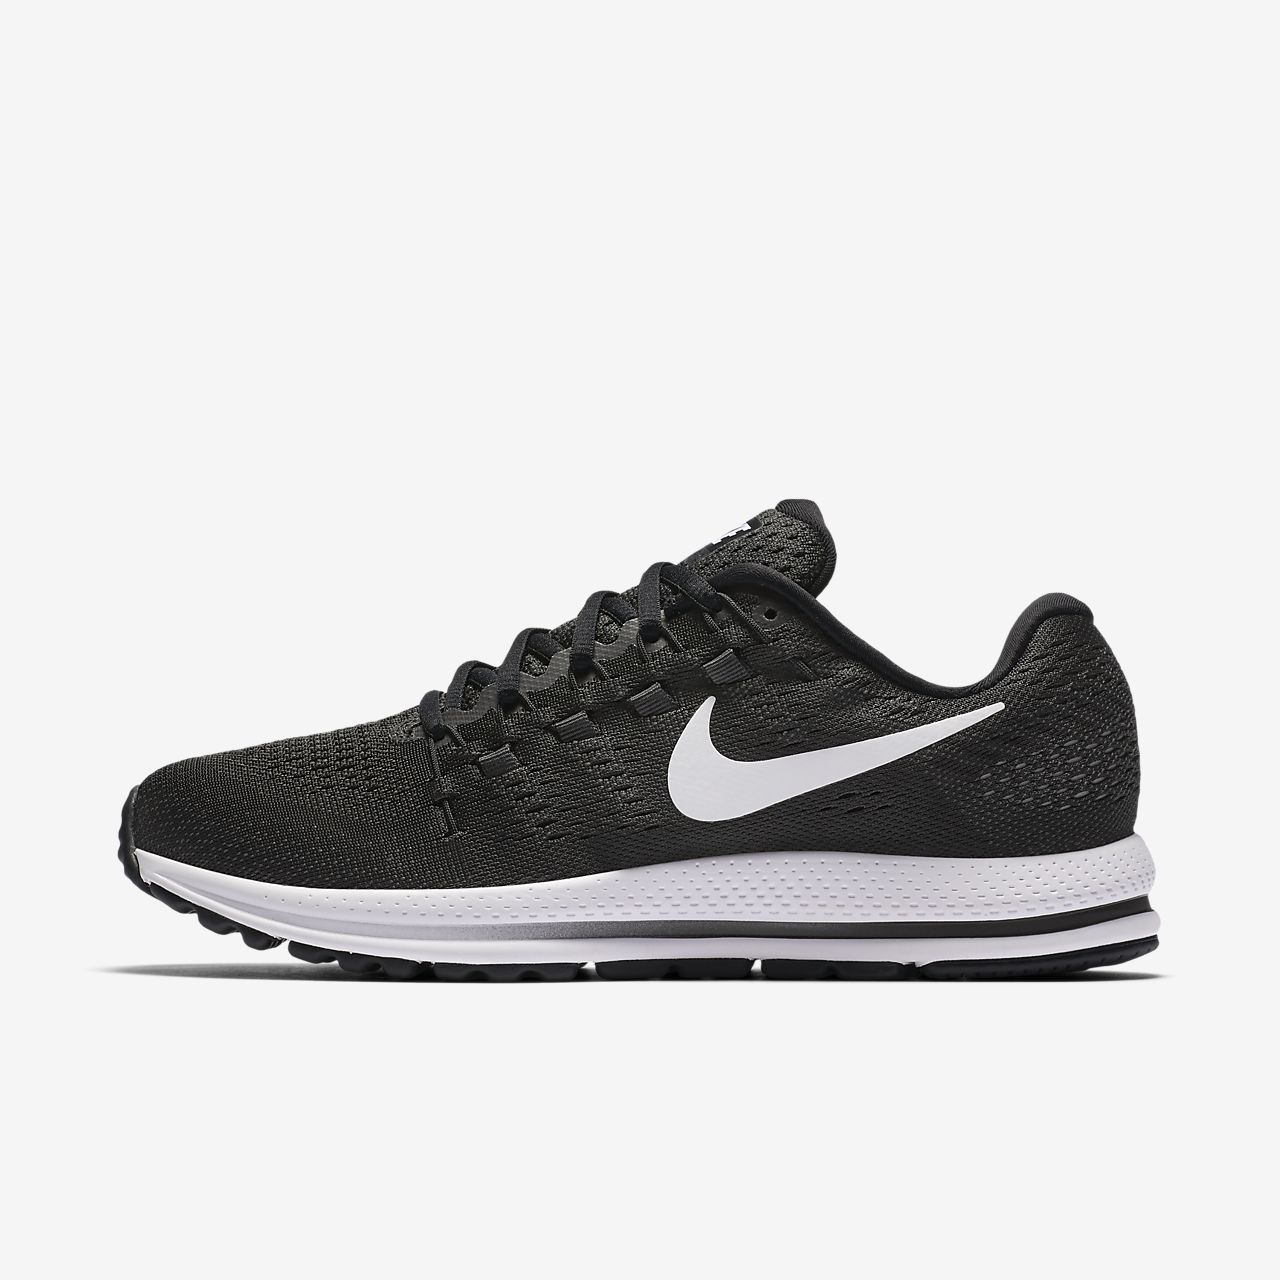 nike free 5.0 black/white/anthracite/grey nike zoom vamero 11